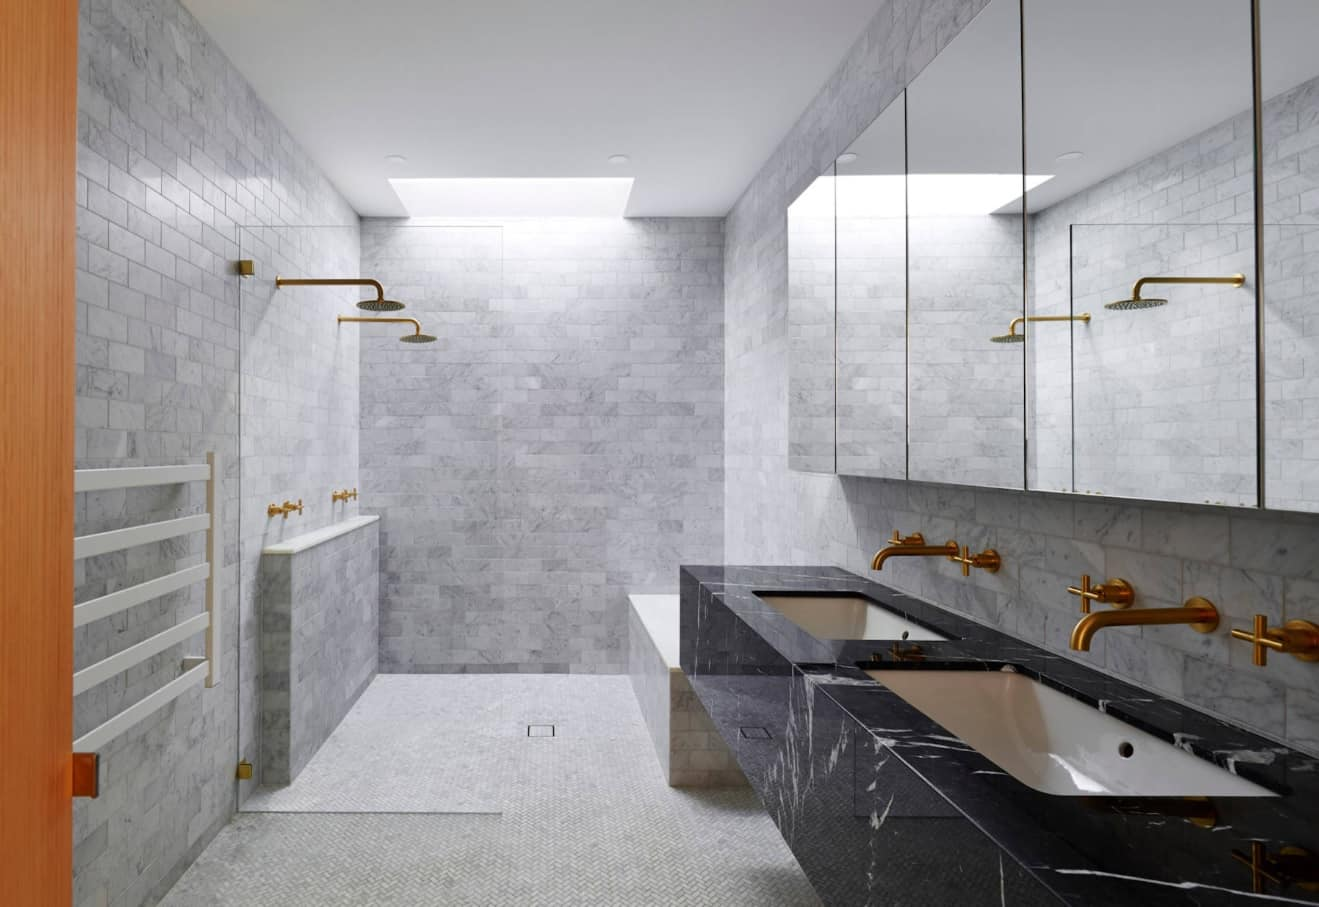 Ensuite Bathroom as the Way to Organize Space. Gray marble imitating tiles and dark marble vanity for top-notch styled bathroom